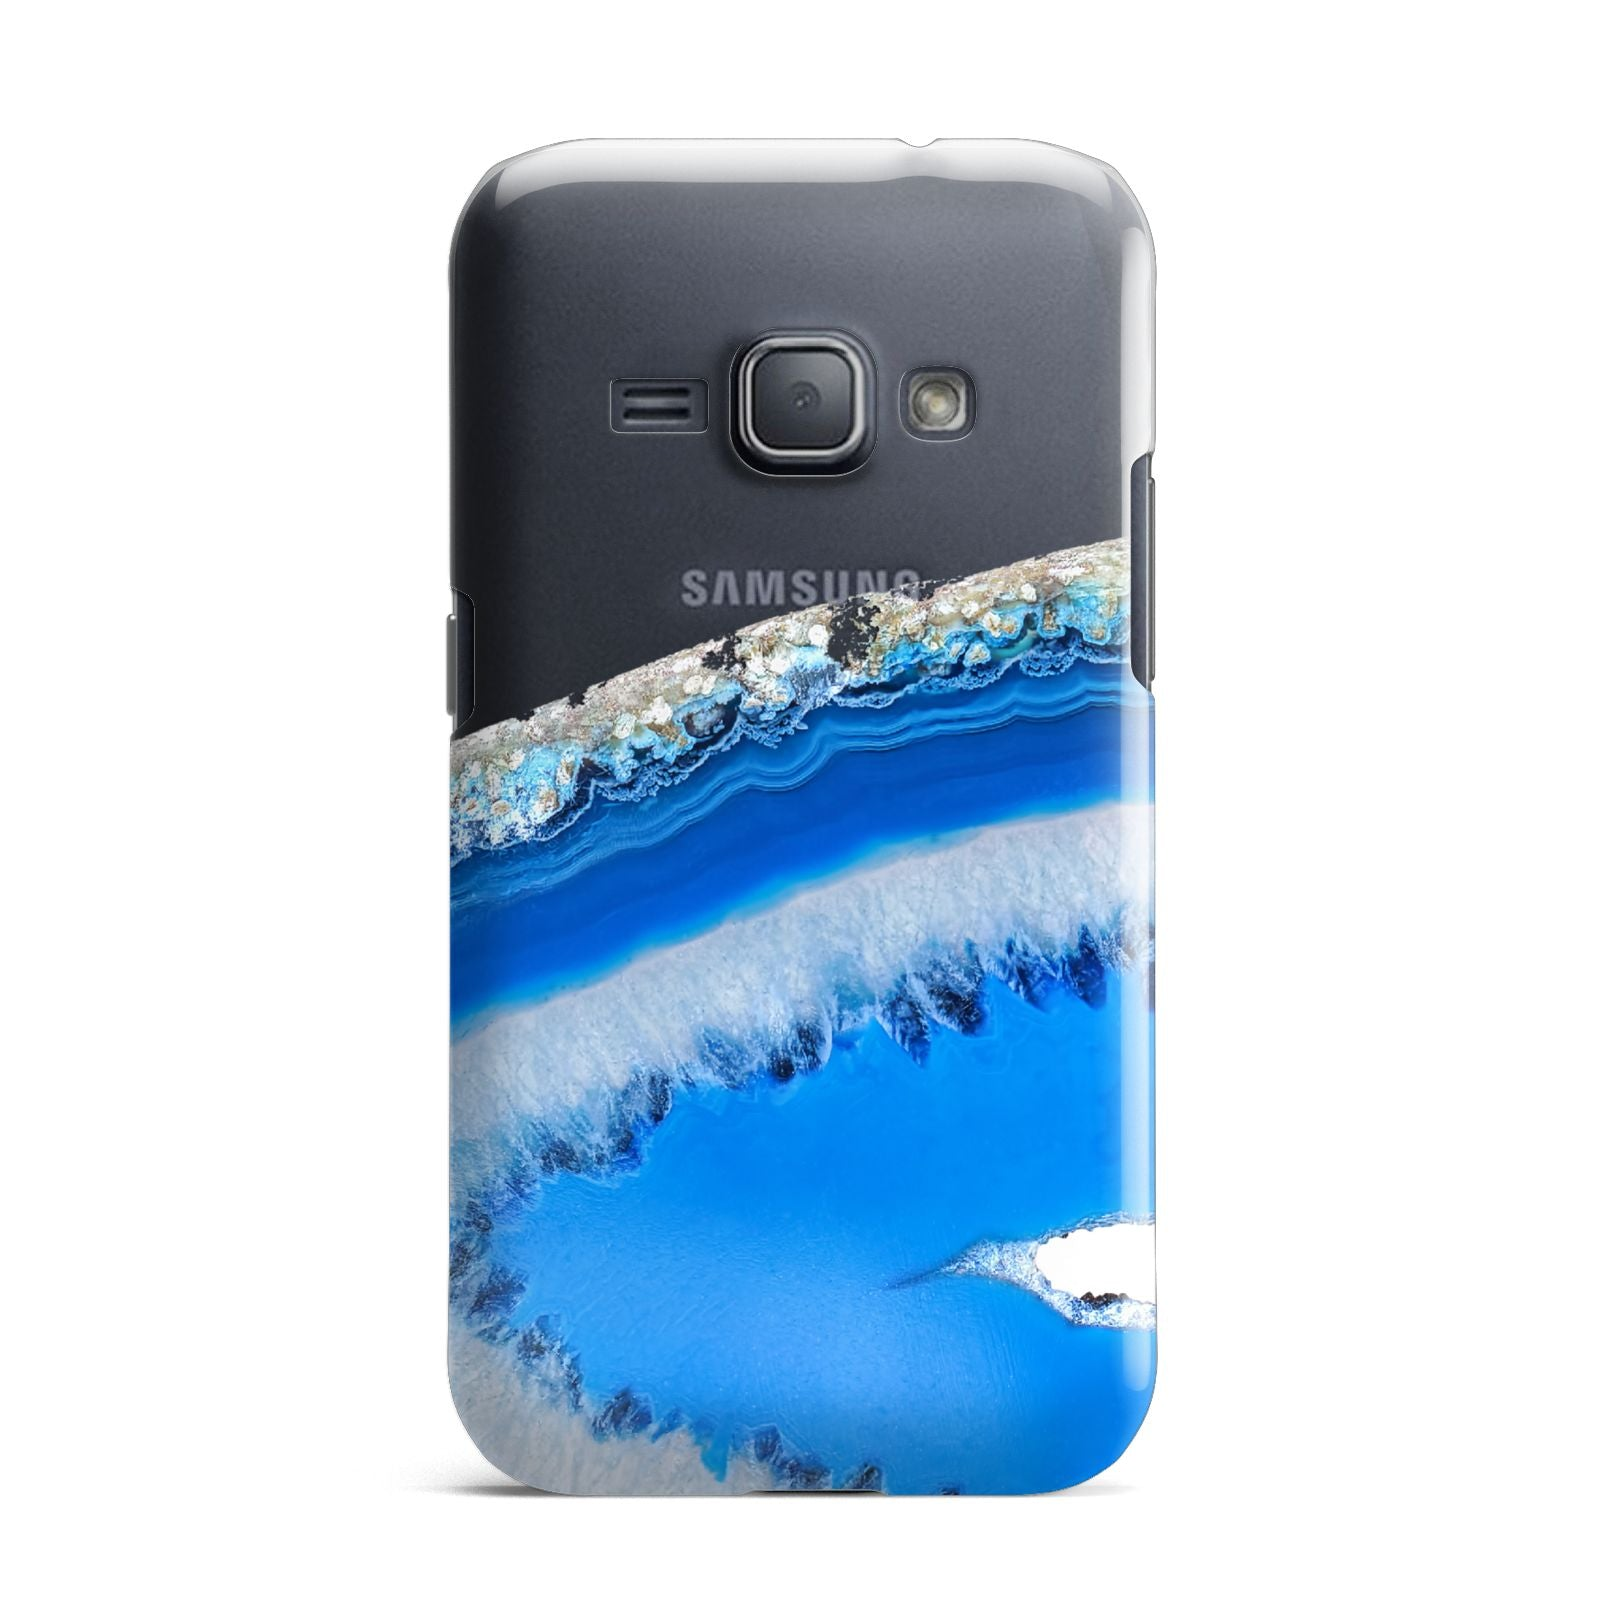 Agate Blue Samsung Galaxy J1 2016 Case